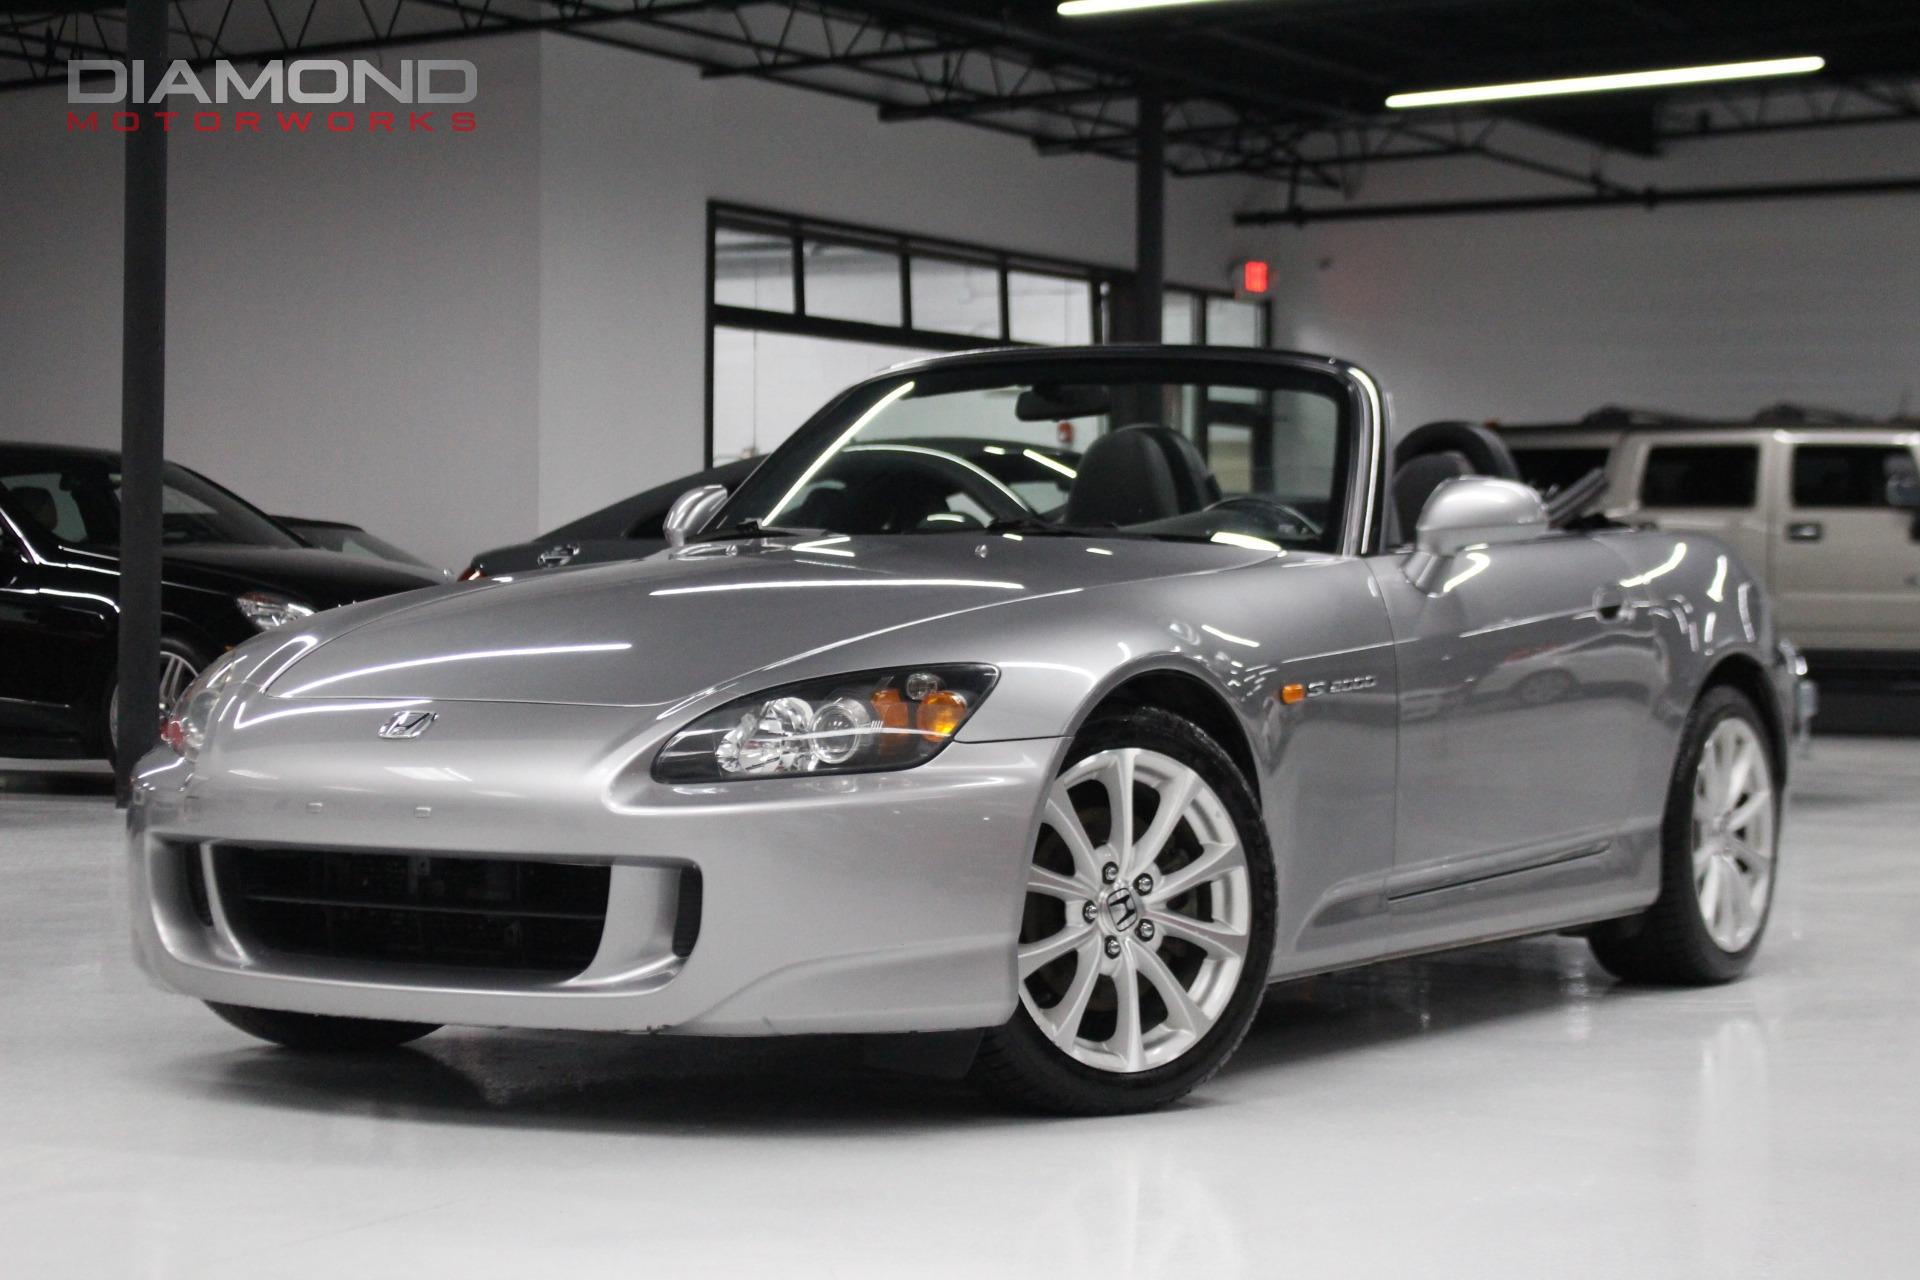 Used 2006 honda s2000 mt lisle il for General motors dealers near me